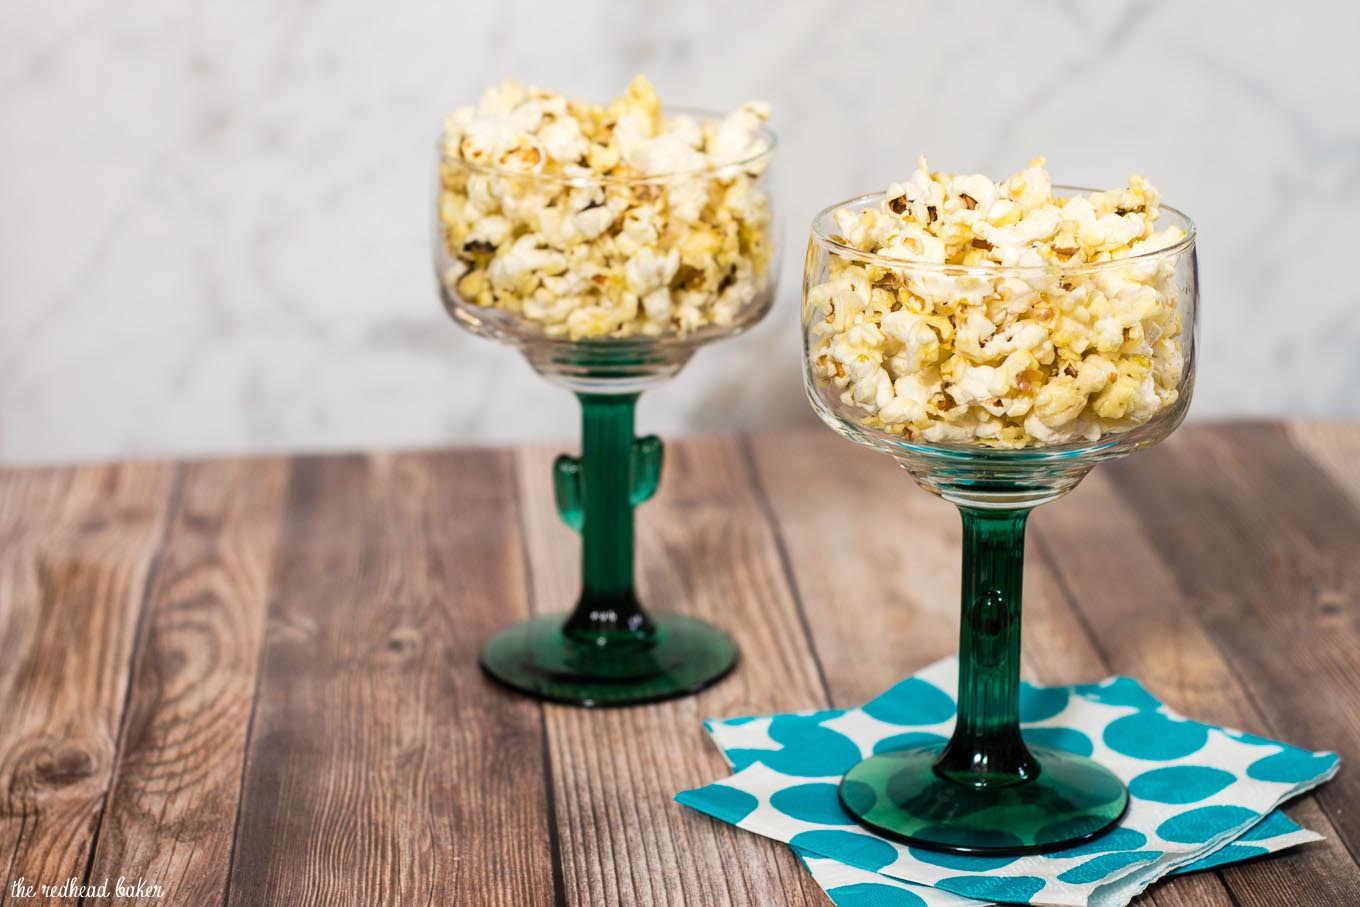 Indulge in an adult snack — margarita popcorn, coated in butter flavored with tequila and lime juice. It's so easy to make! #SundaySupper